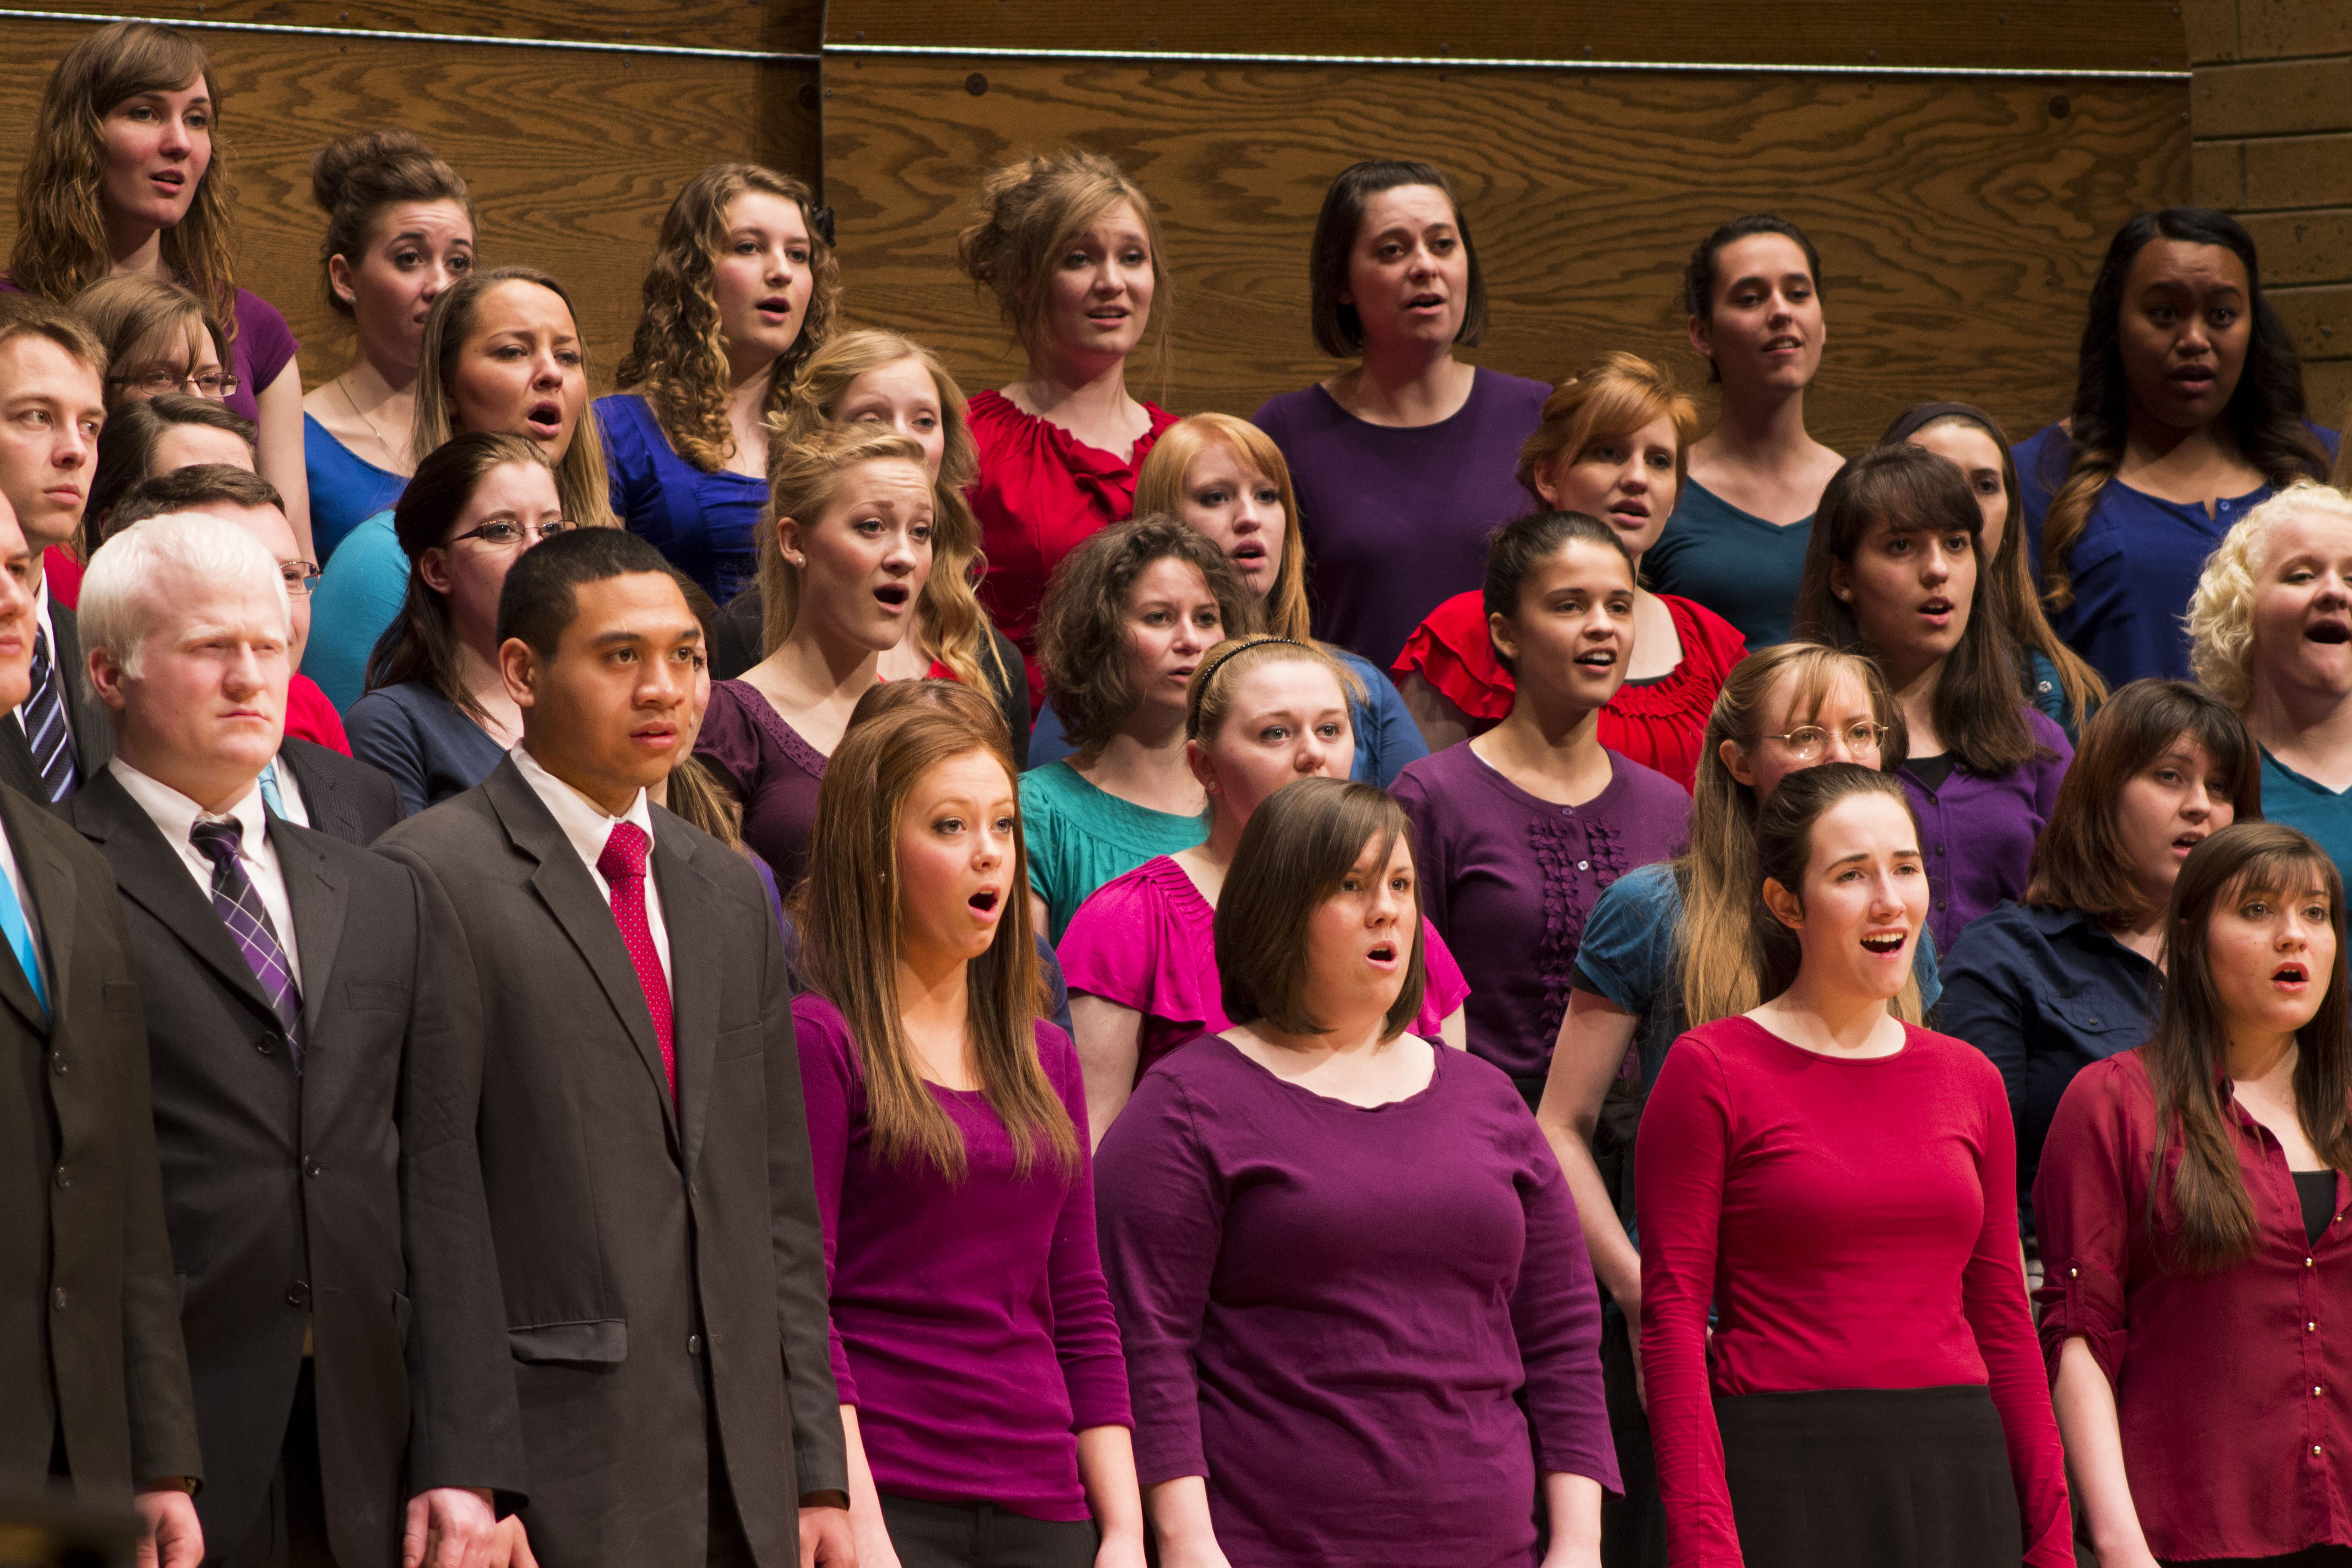 Harvest Choirfest returns to BYU-Idaho